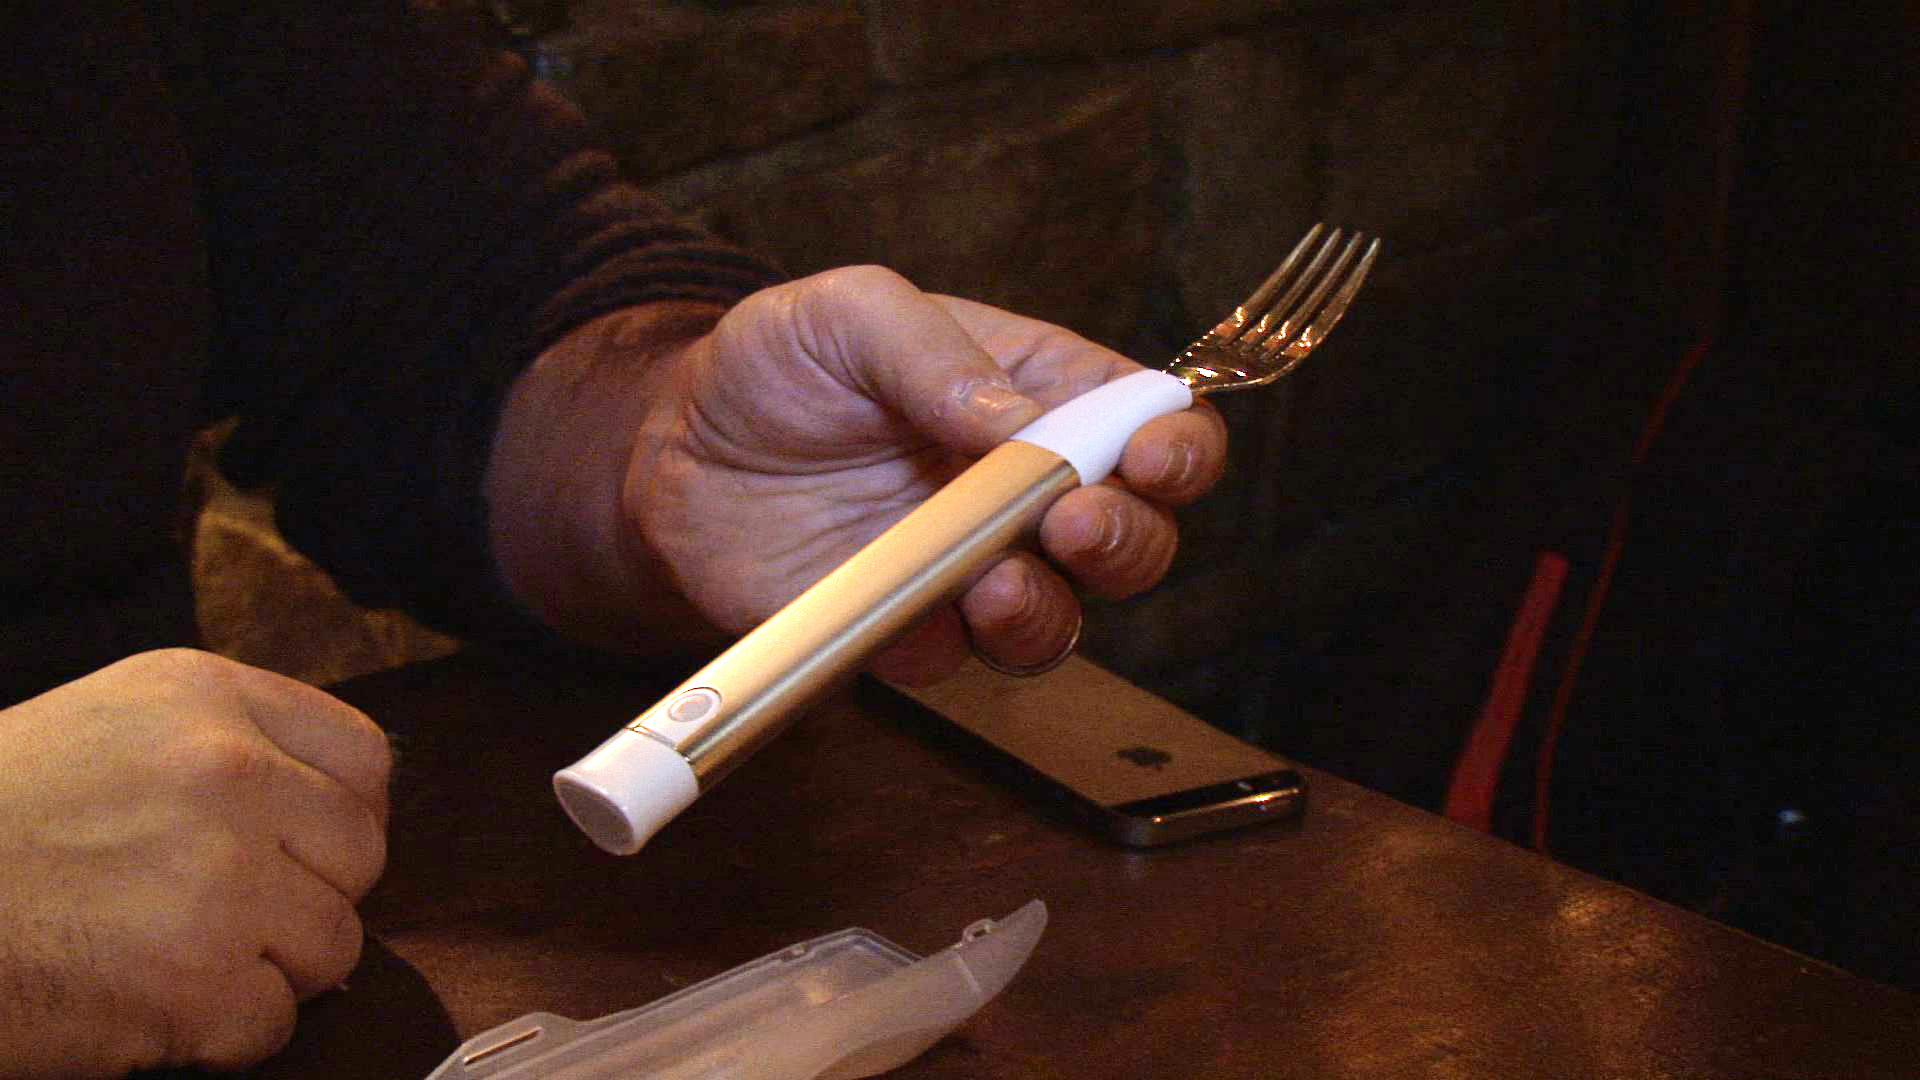 Video: Hapifork, the Bluetooth vibrating health fork: hands-on with the oddest fitness gadget